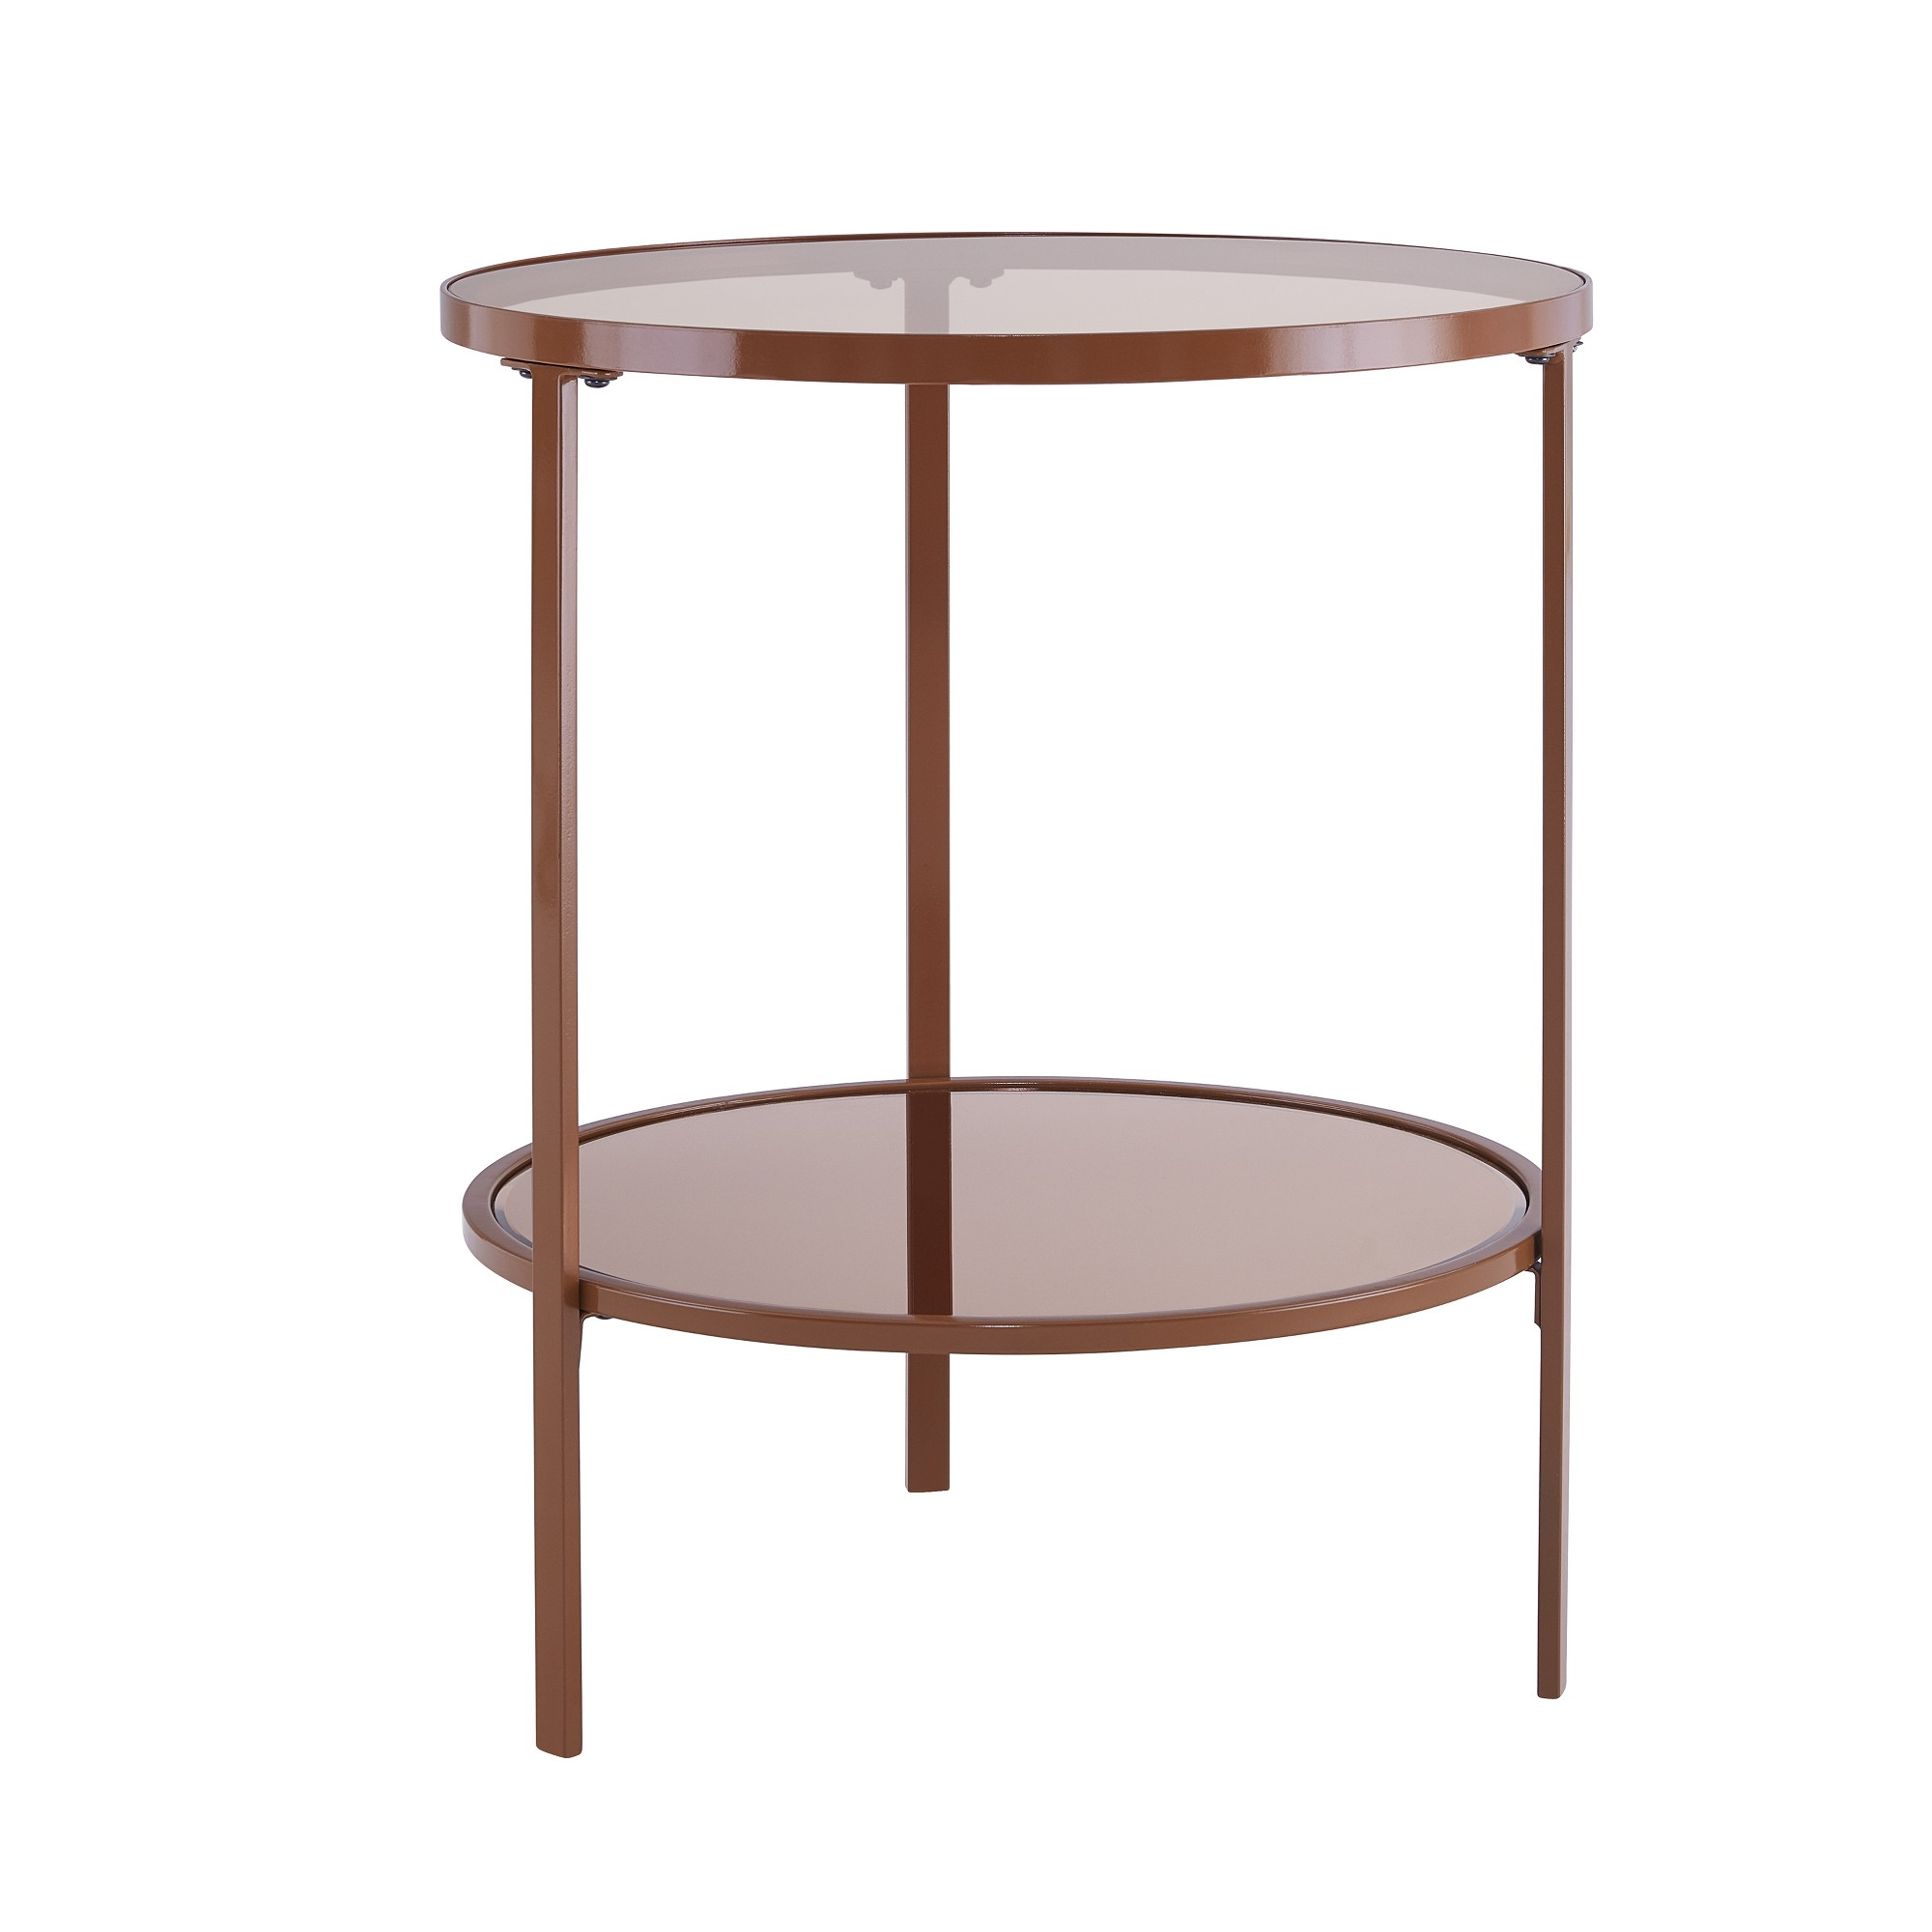 lenae glass side table brown aiden lane products stained end tables black real leather sofa liberty furniture ocean isle collection ashley living room ethan allen american